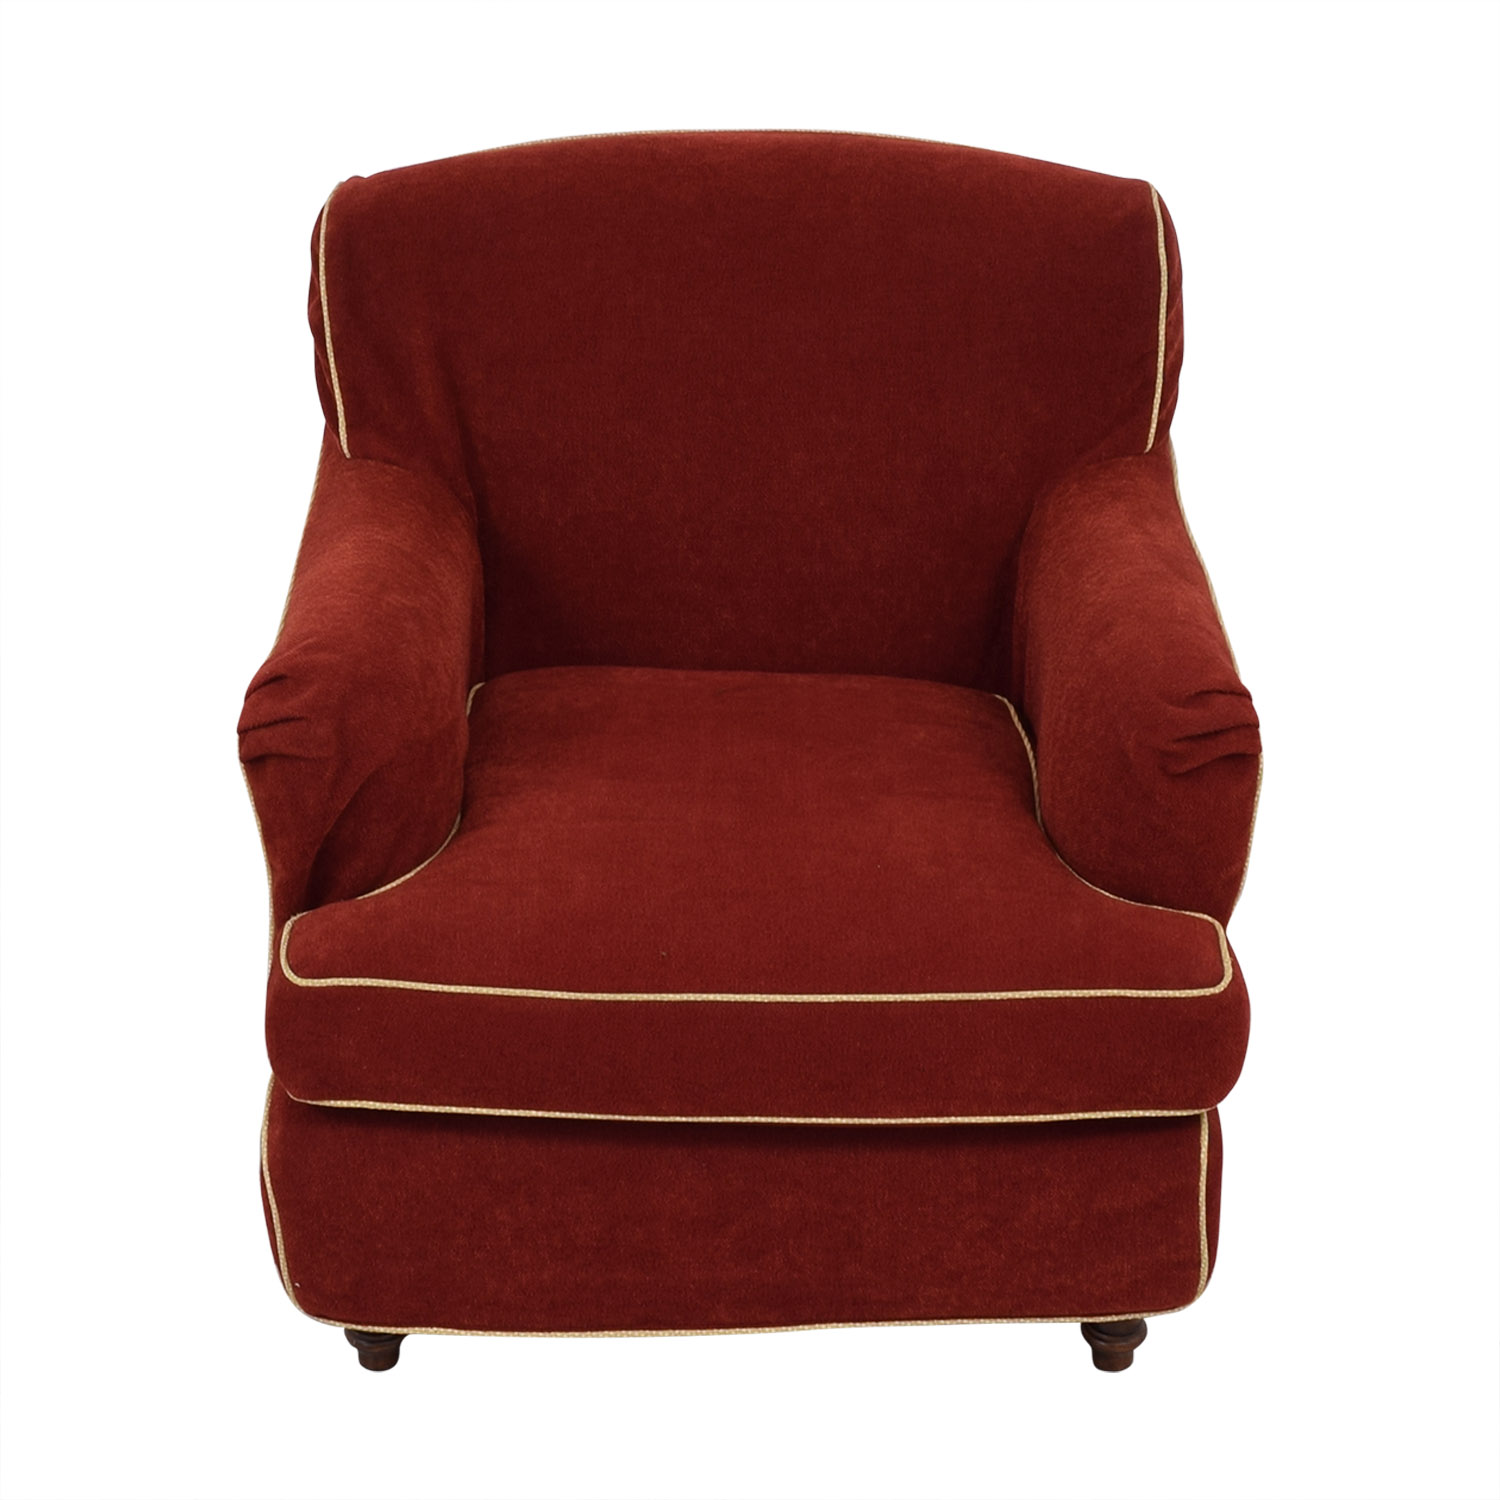 JM Paquet JM Paquet Club Chair with Contrast Piping price